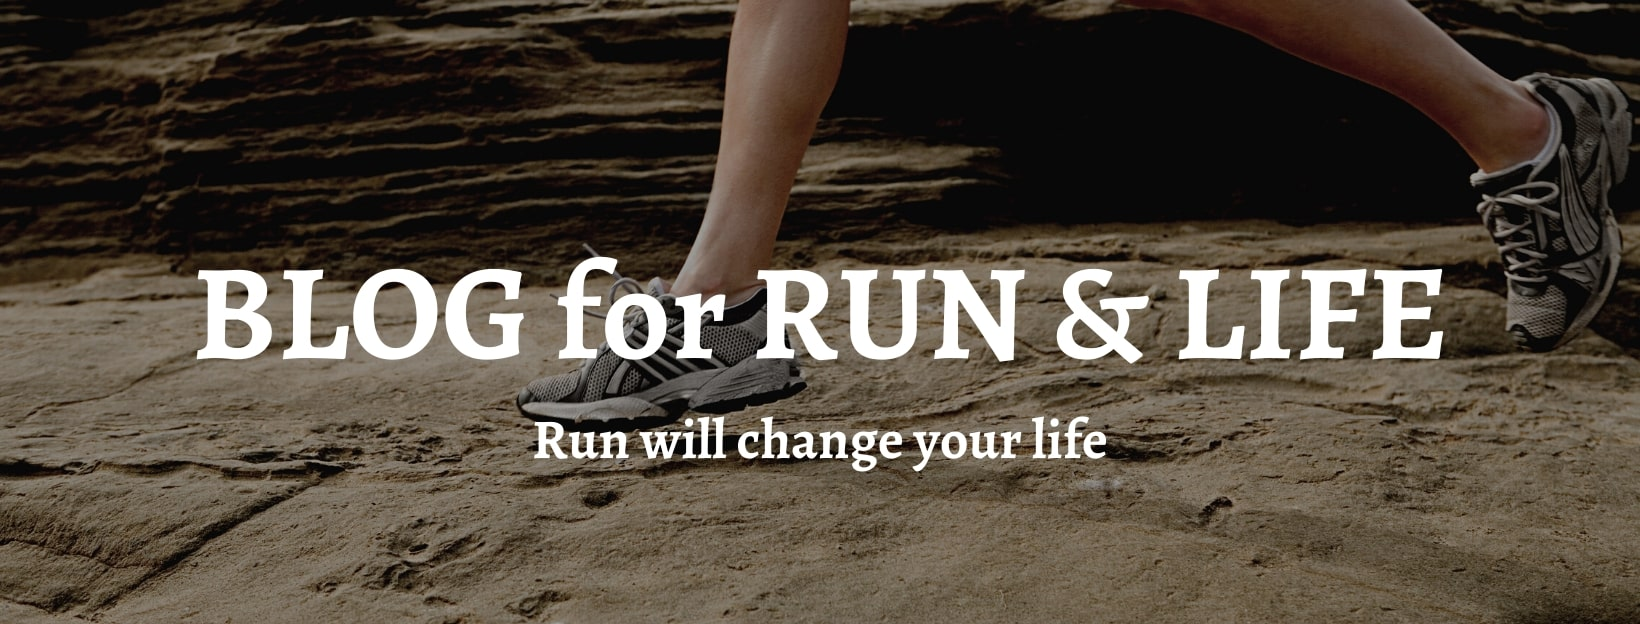 BLOG for RUN&LIFE